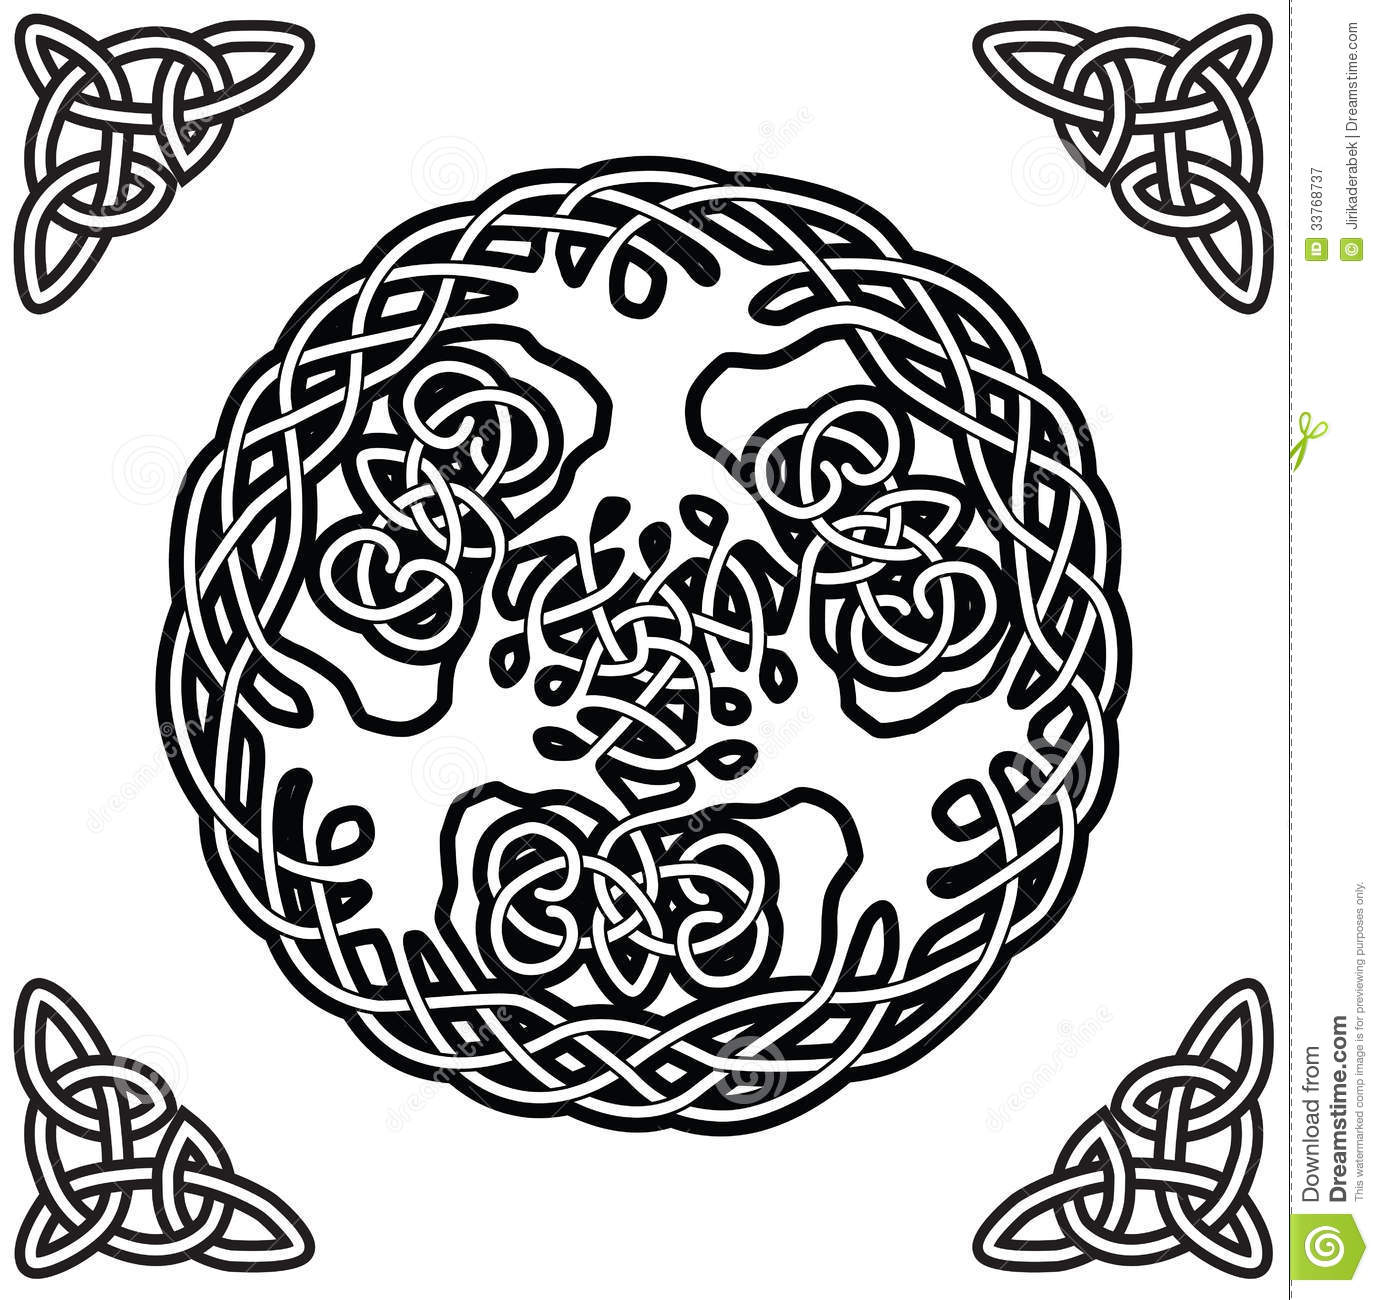 Celtic Ornament Yggdrasil Royalty Free Stock Photography